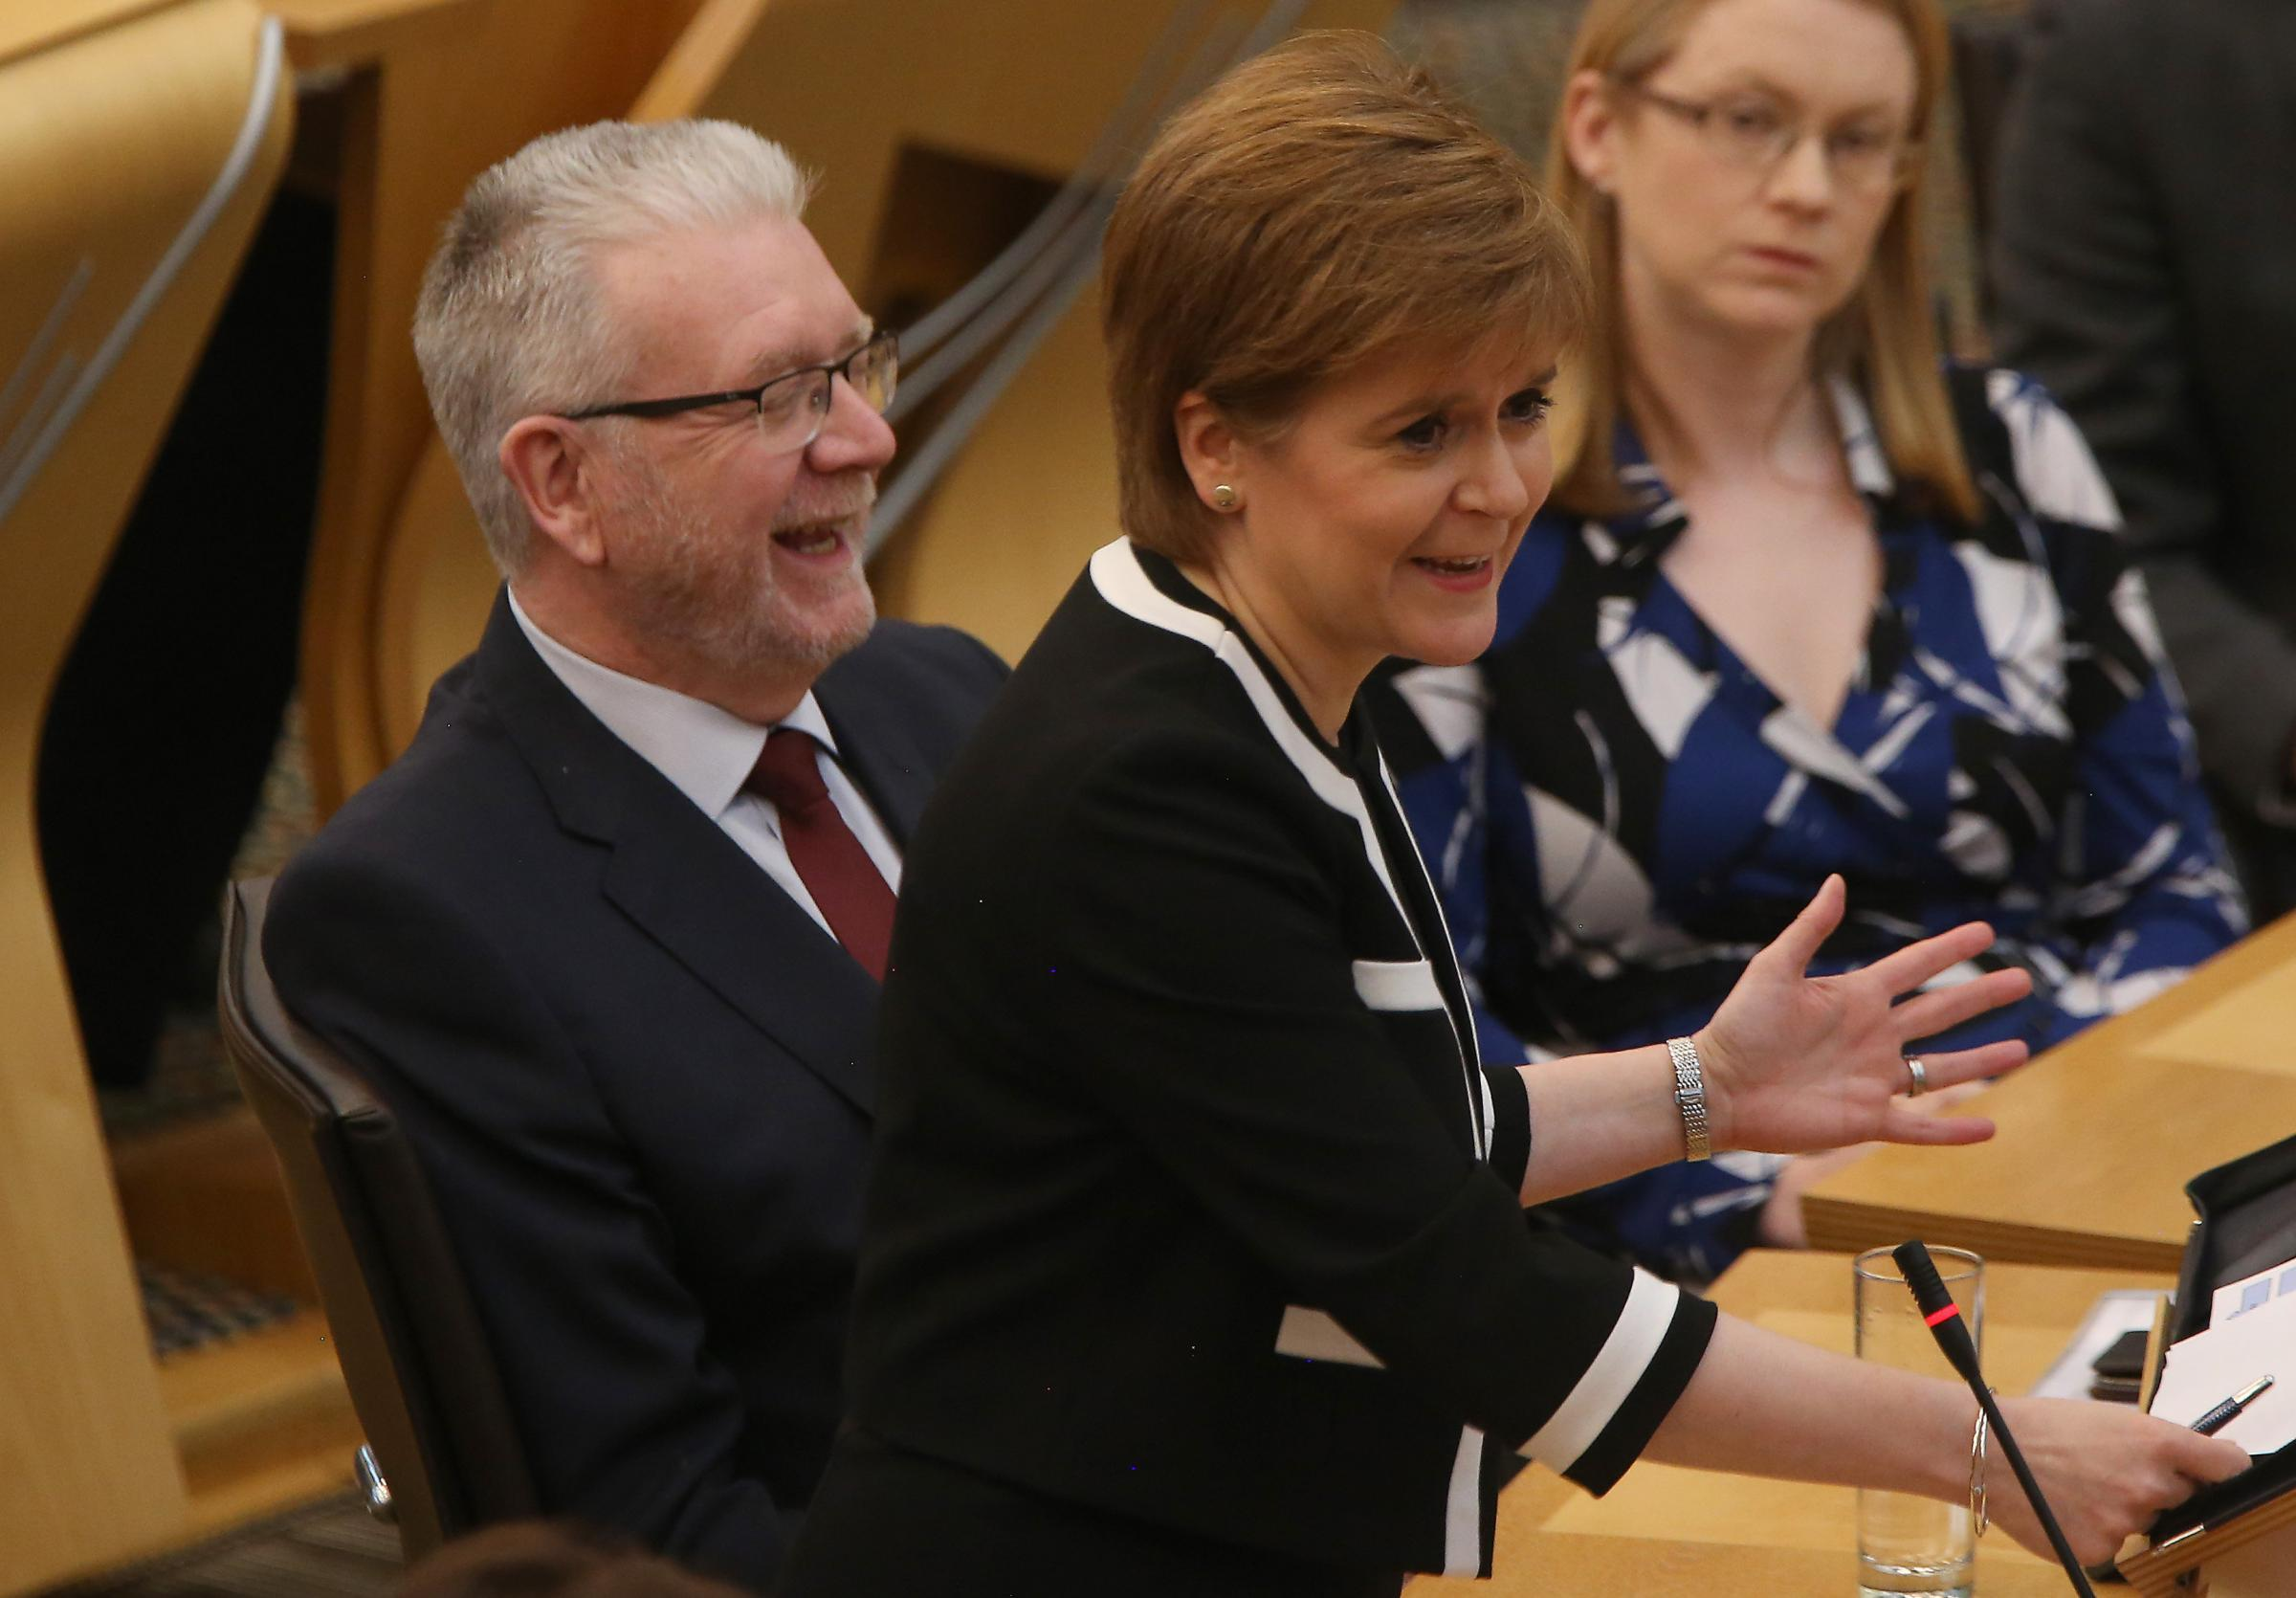 Nicola Sturgeon and her Brexit Secretary Mike Russell at FMQs at Holyrood thursday. STY.Pic Gordon Terris/The Herald.14/9/19.